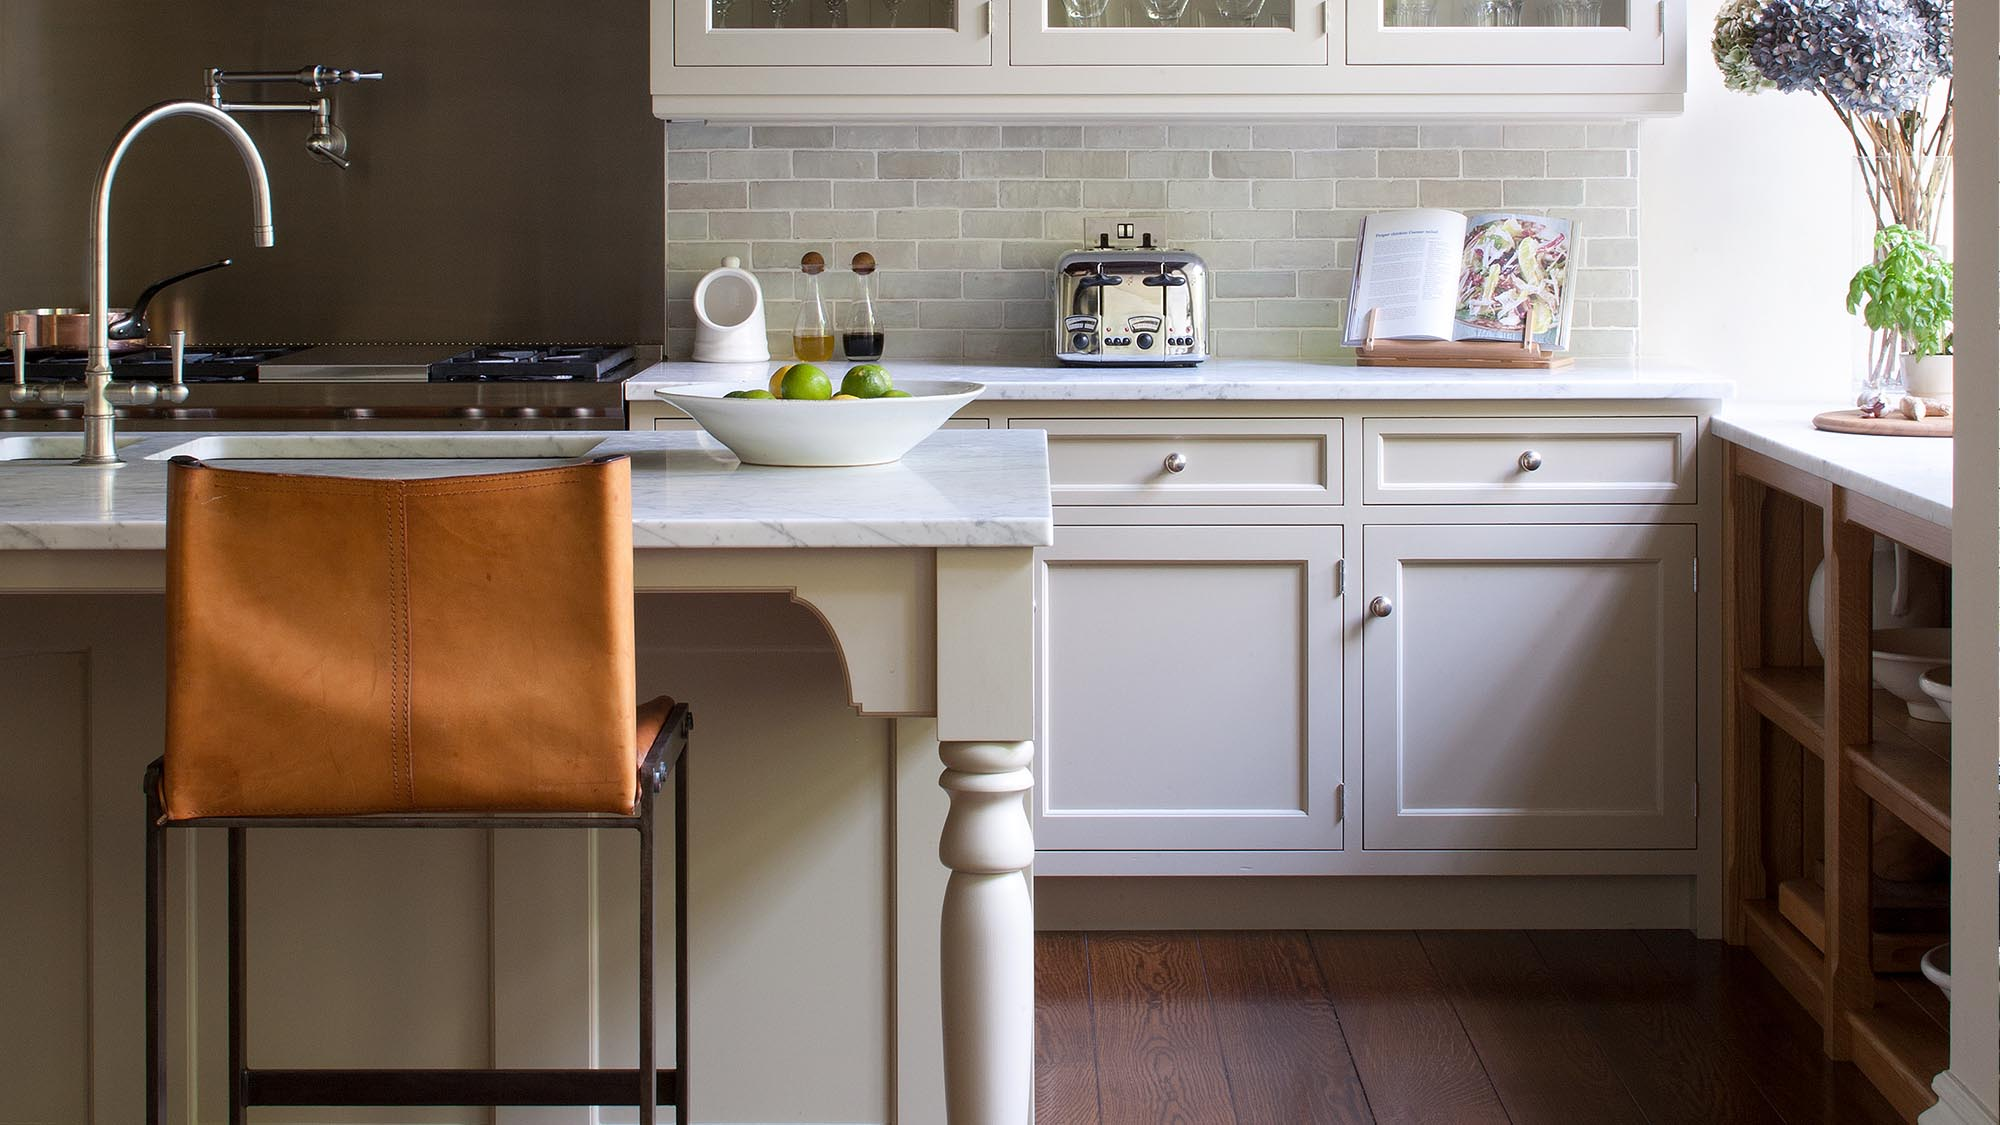 The Hamptons Inspired Kitchen in a 19th century London house